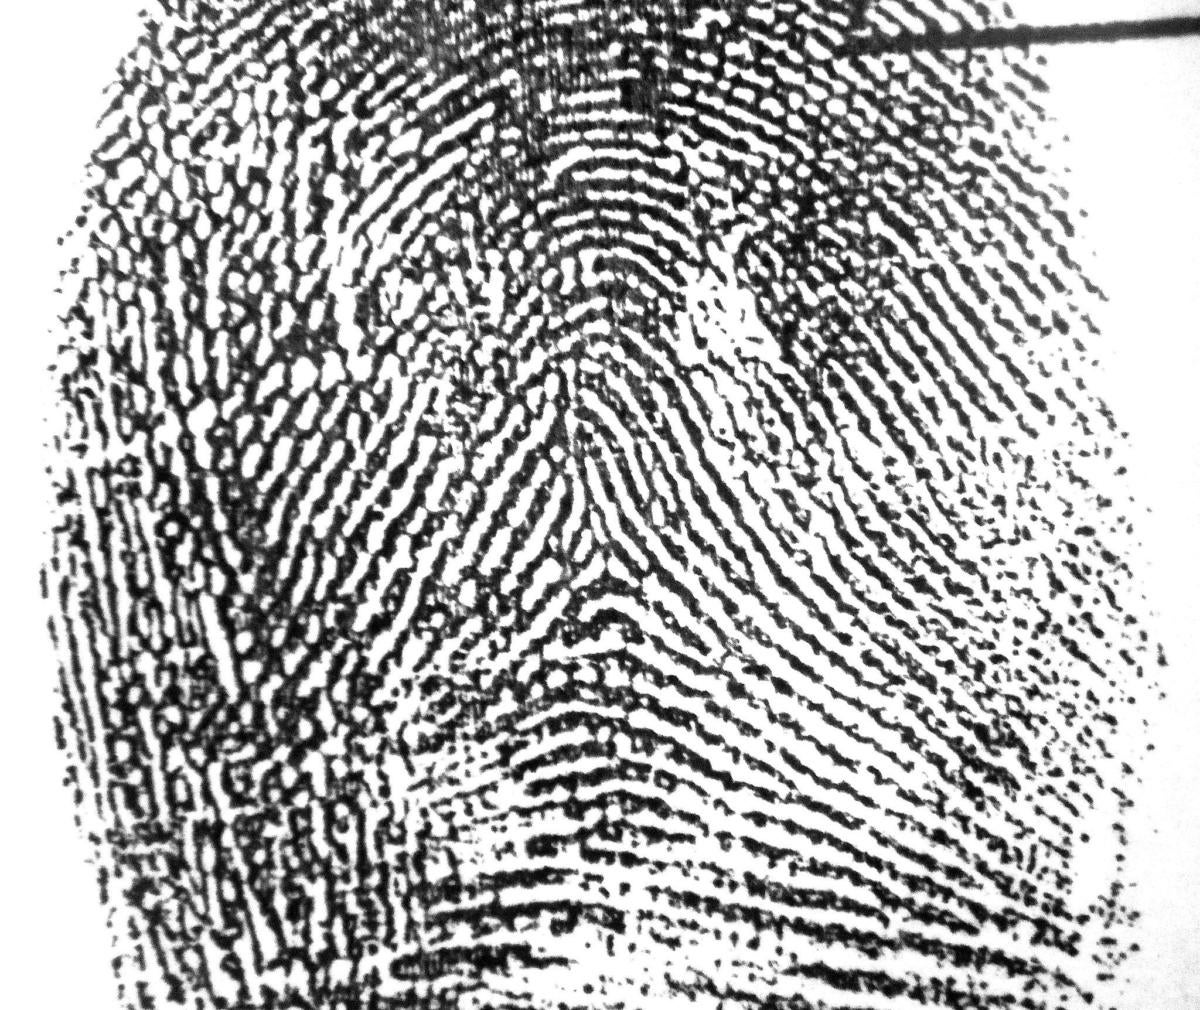 tented arch in a left index fingerprint